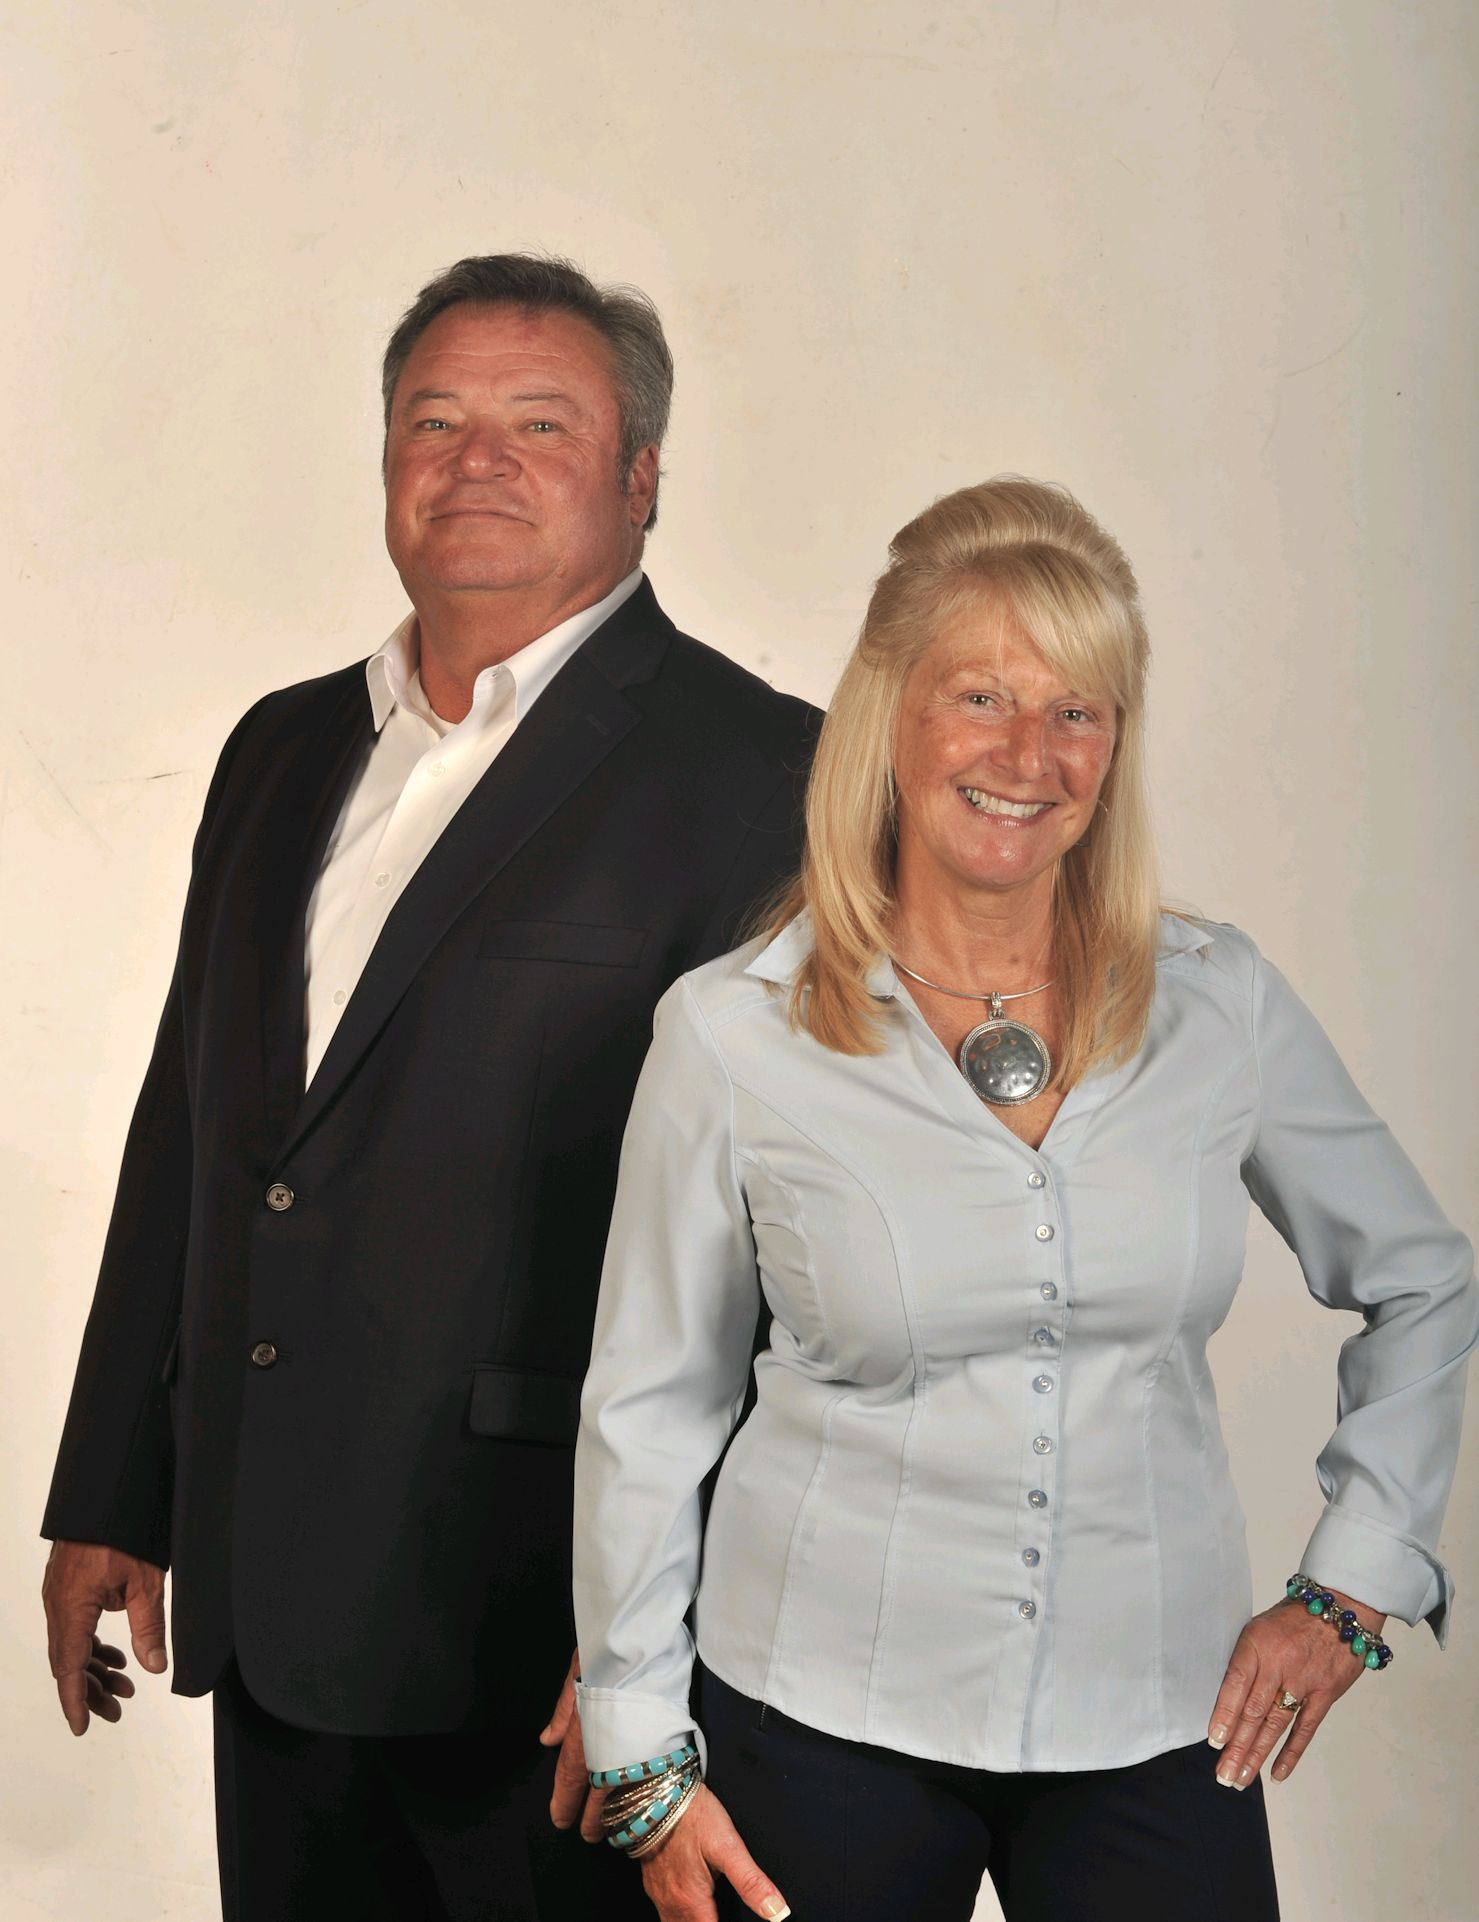 Jim and Jan Theisen